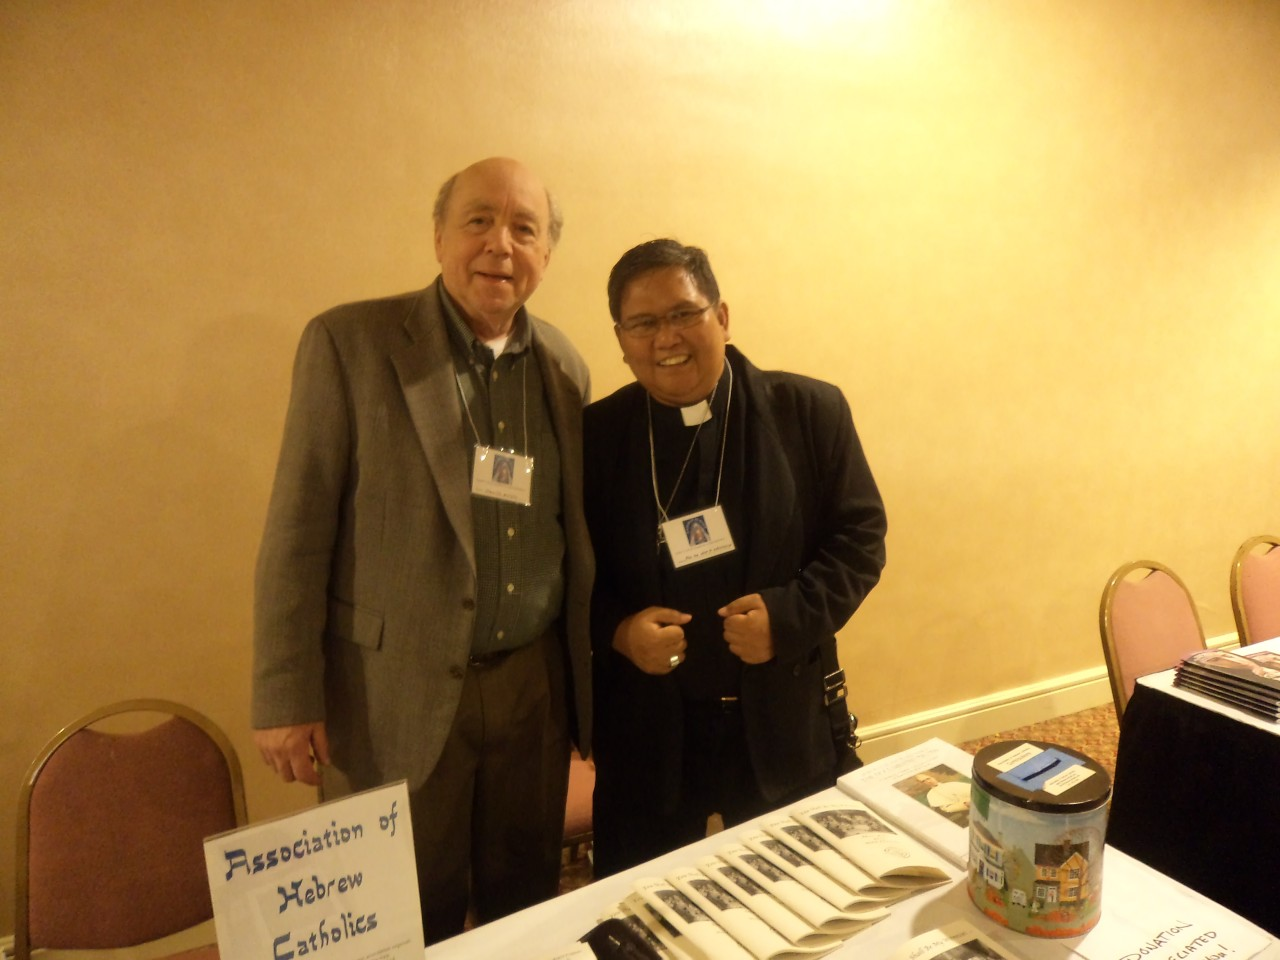 FR. ABE WITH MR. DAVID MOSS